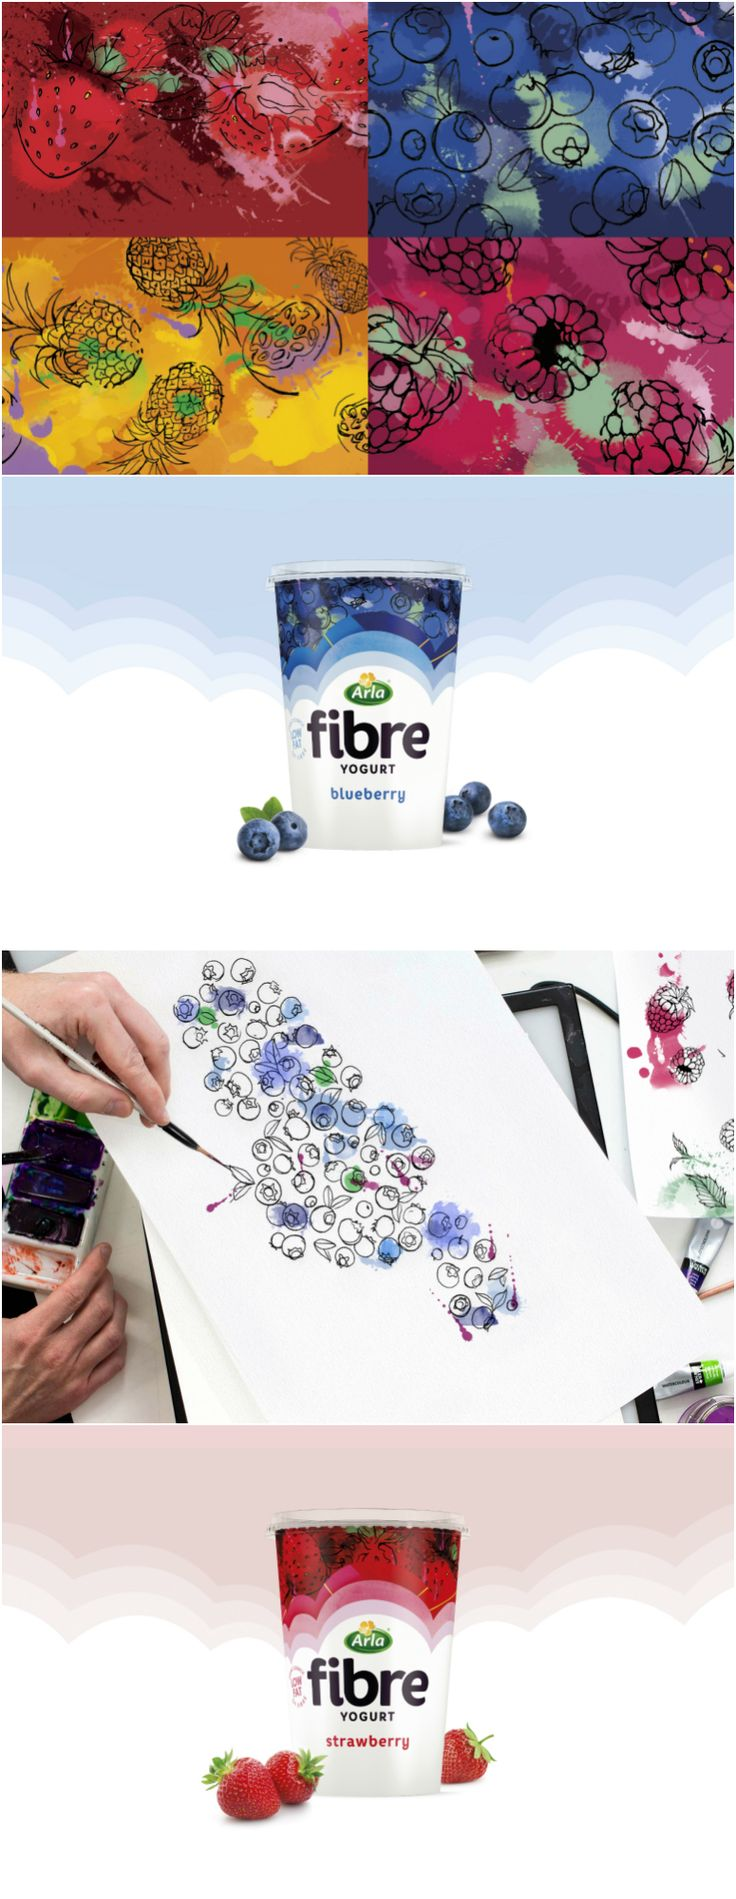 Abstract Fruit Illustrations and Patterns Used for Fibre Yogurts to be Launched in the UK by Arla Design Agency:Springetts Brand Design Brand / Project Name:Arla Fibre Location:United Kingdom Category: #dairy #yogurt   World Brand & Packaging Design Society